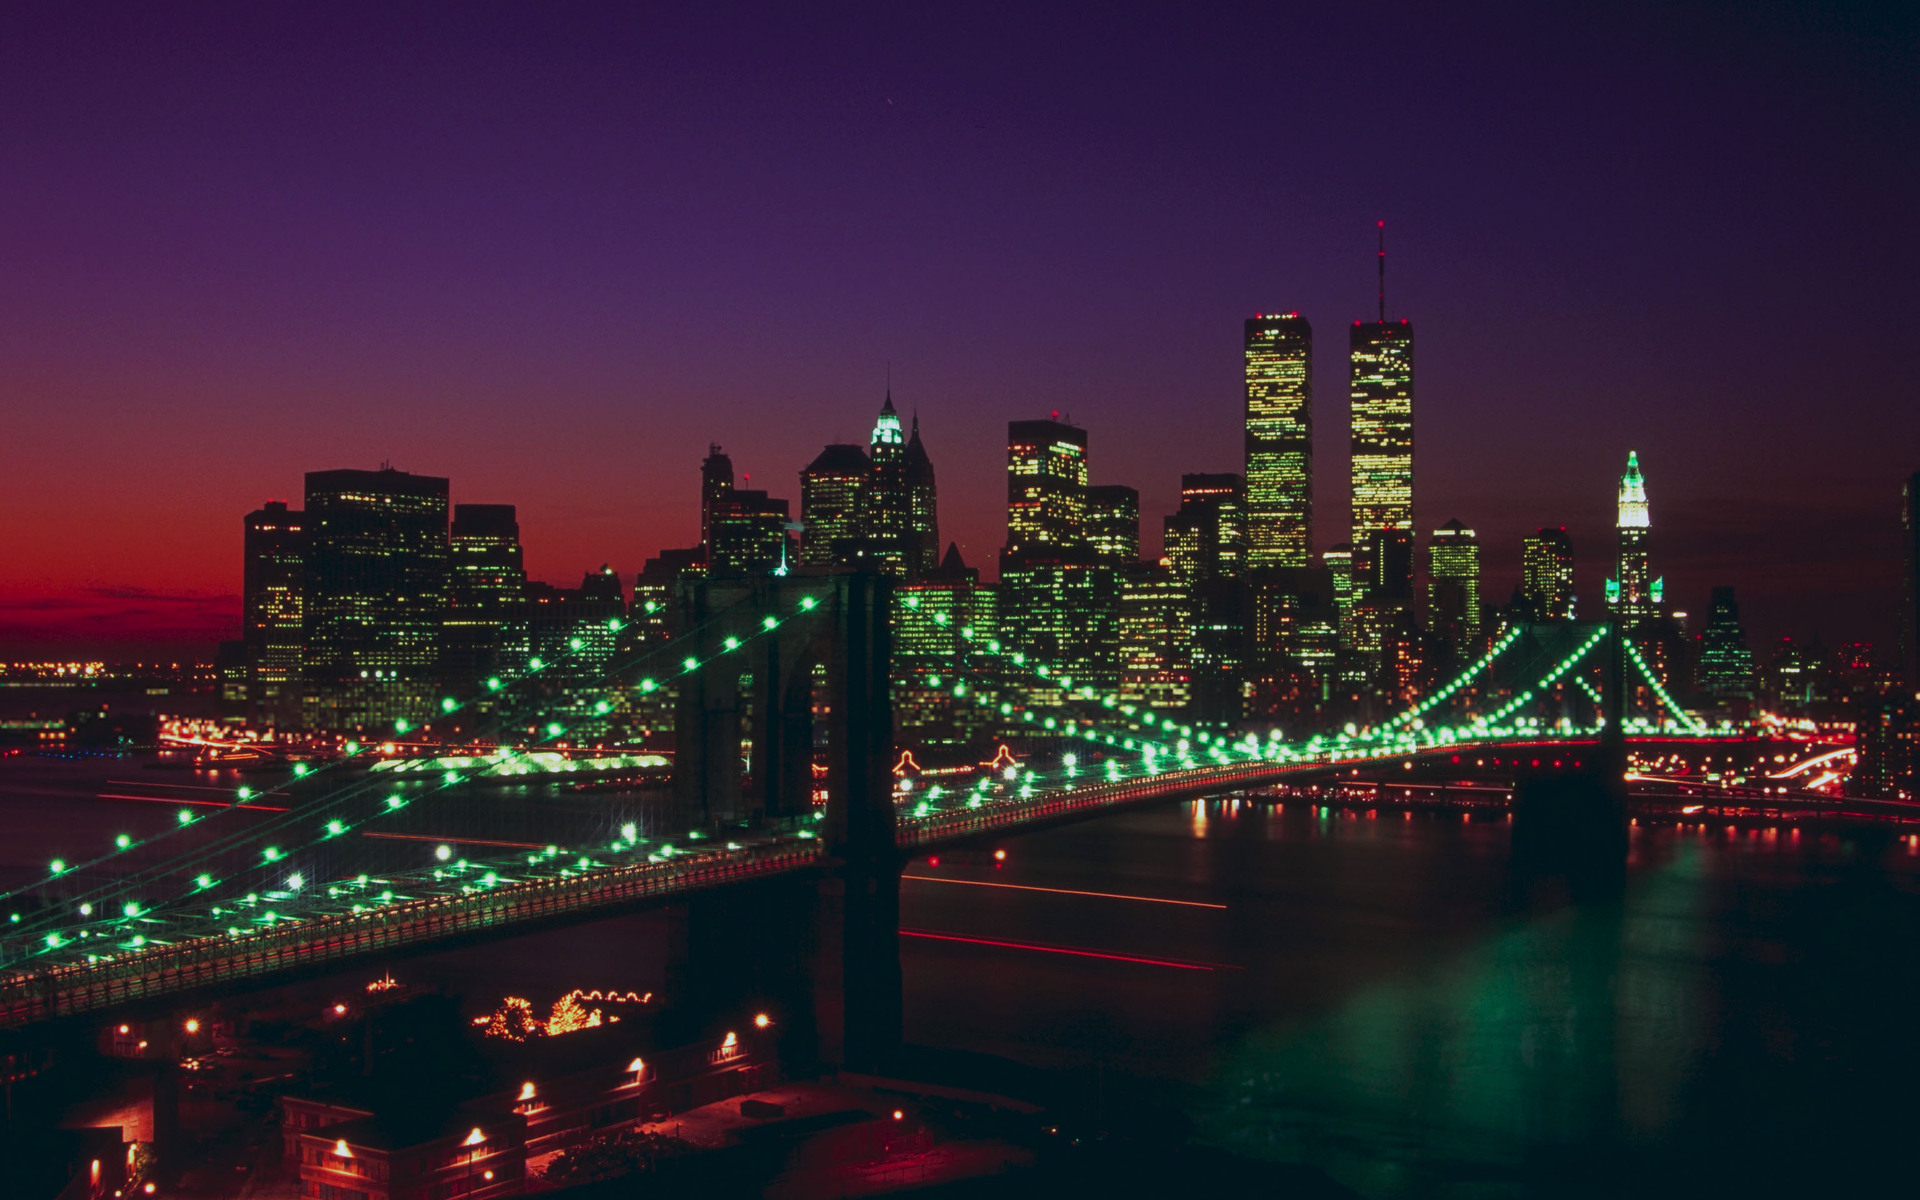 New York Skyline at Night Wallpaper HD 3 City hd background hd 1920x1200